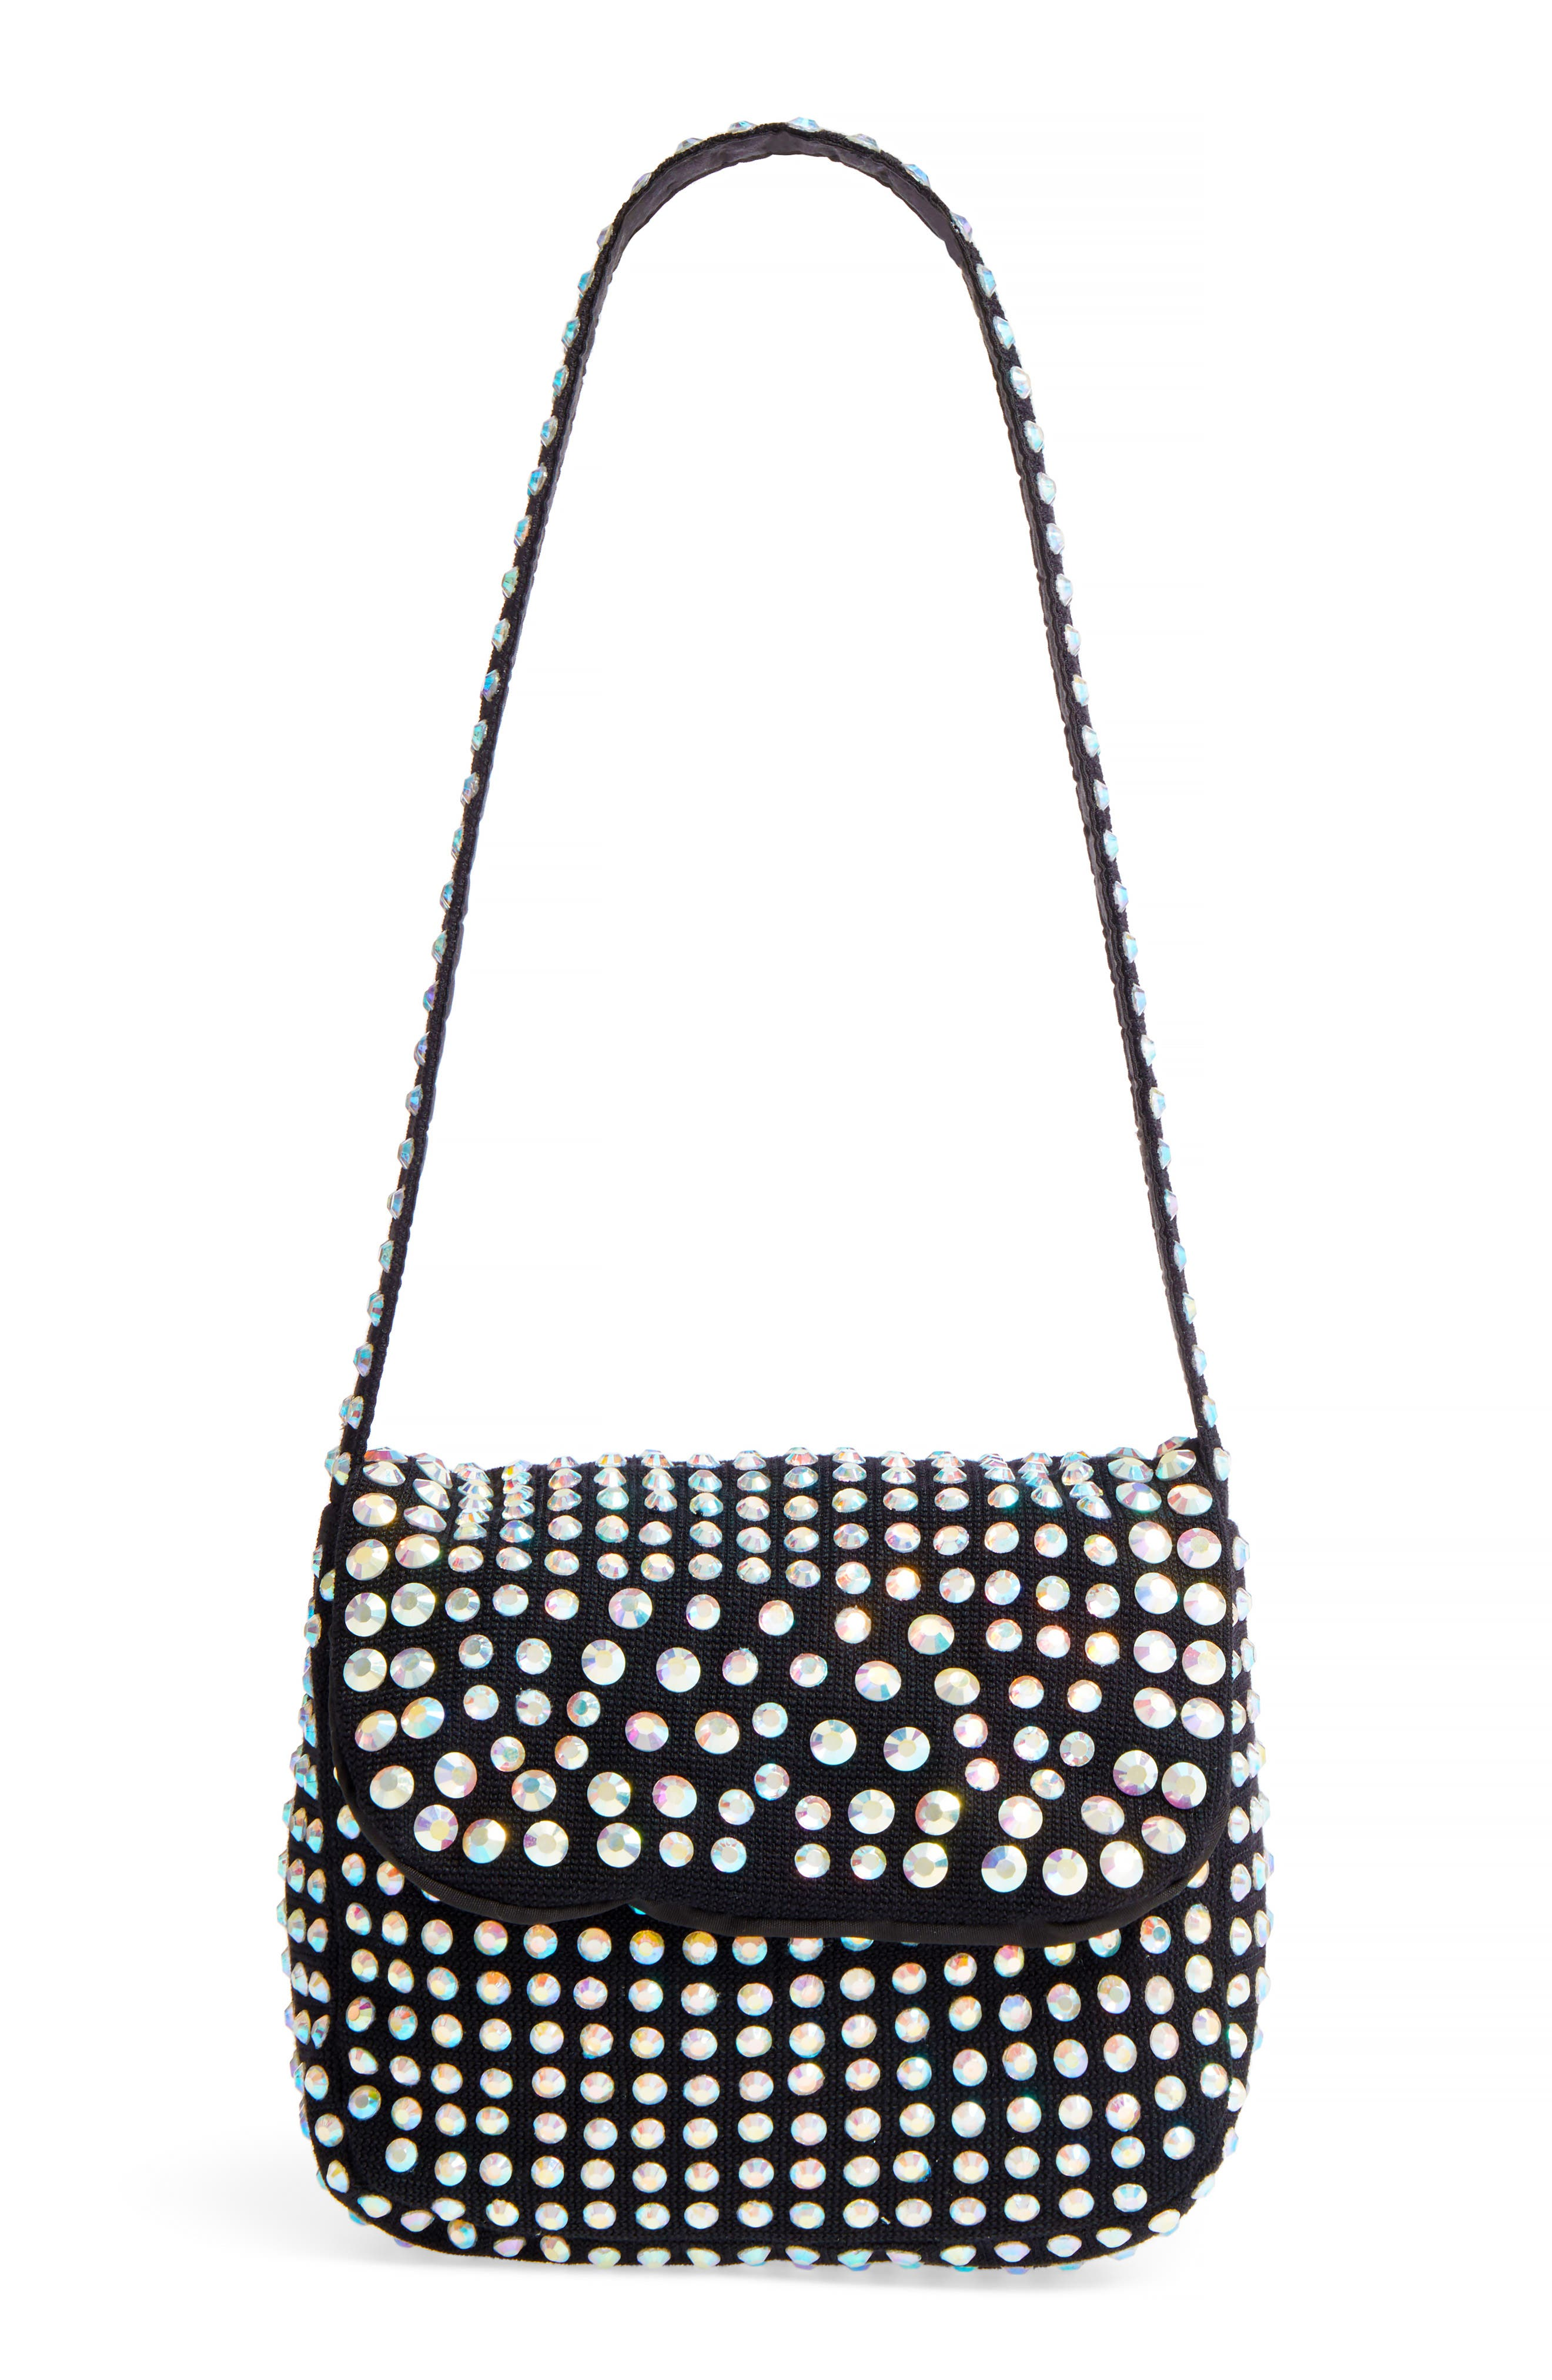 Topshop Kiki Embellished Shoulder Bag